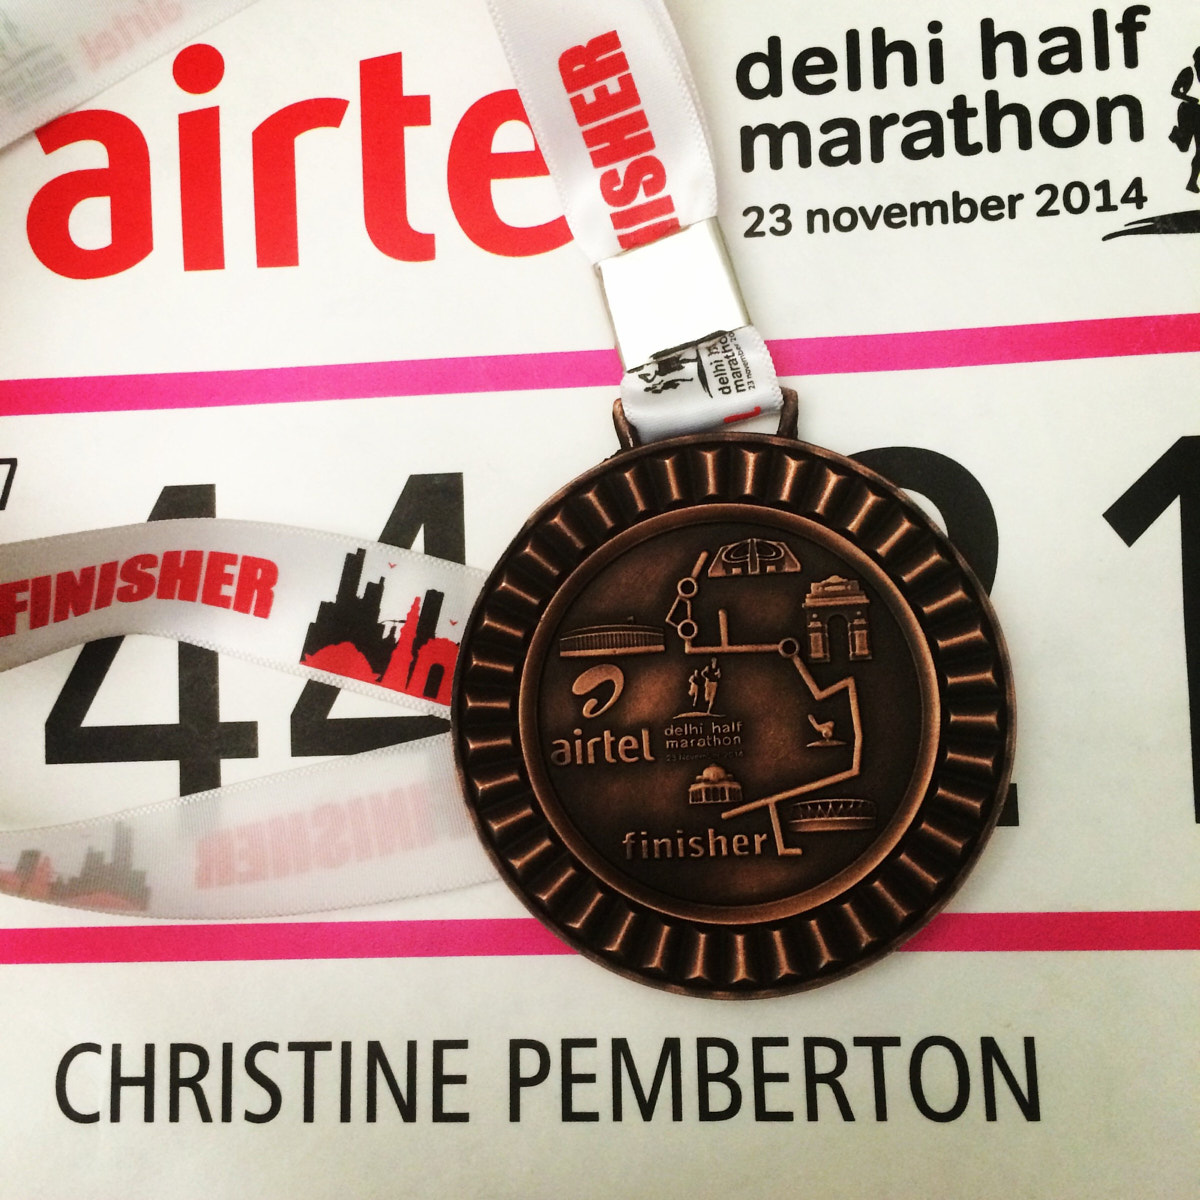 What a brilliant half marathon that was (Pity about the salty orange, though)